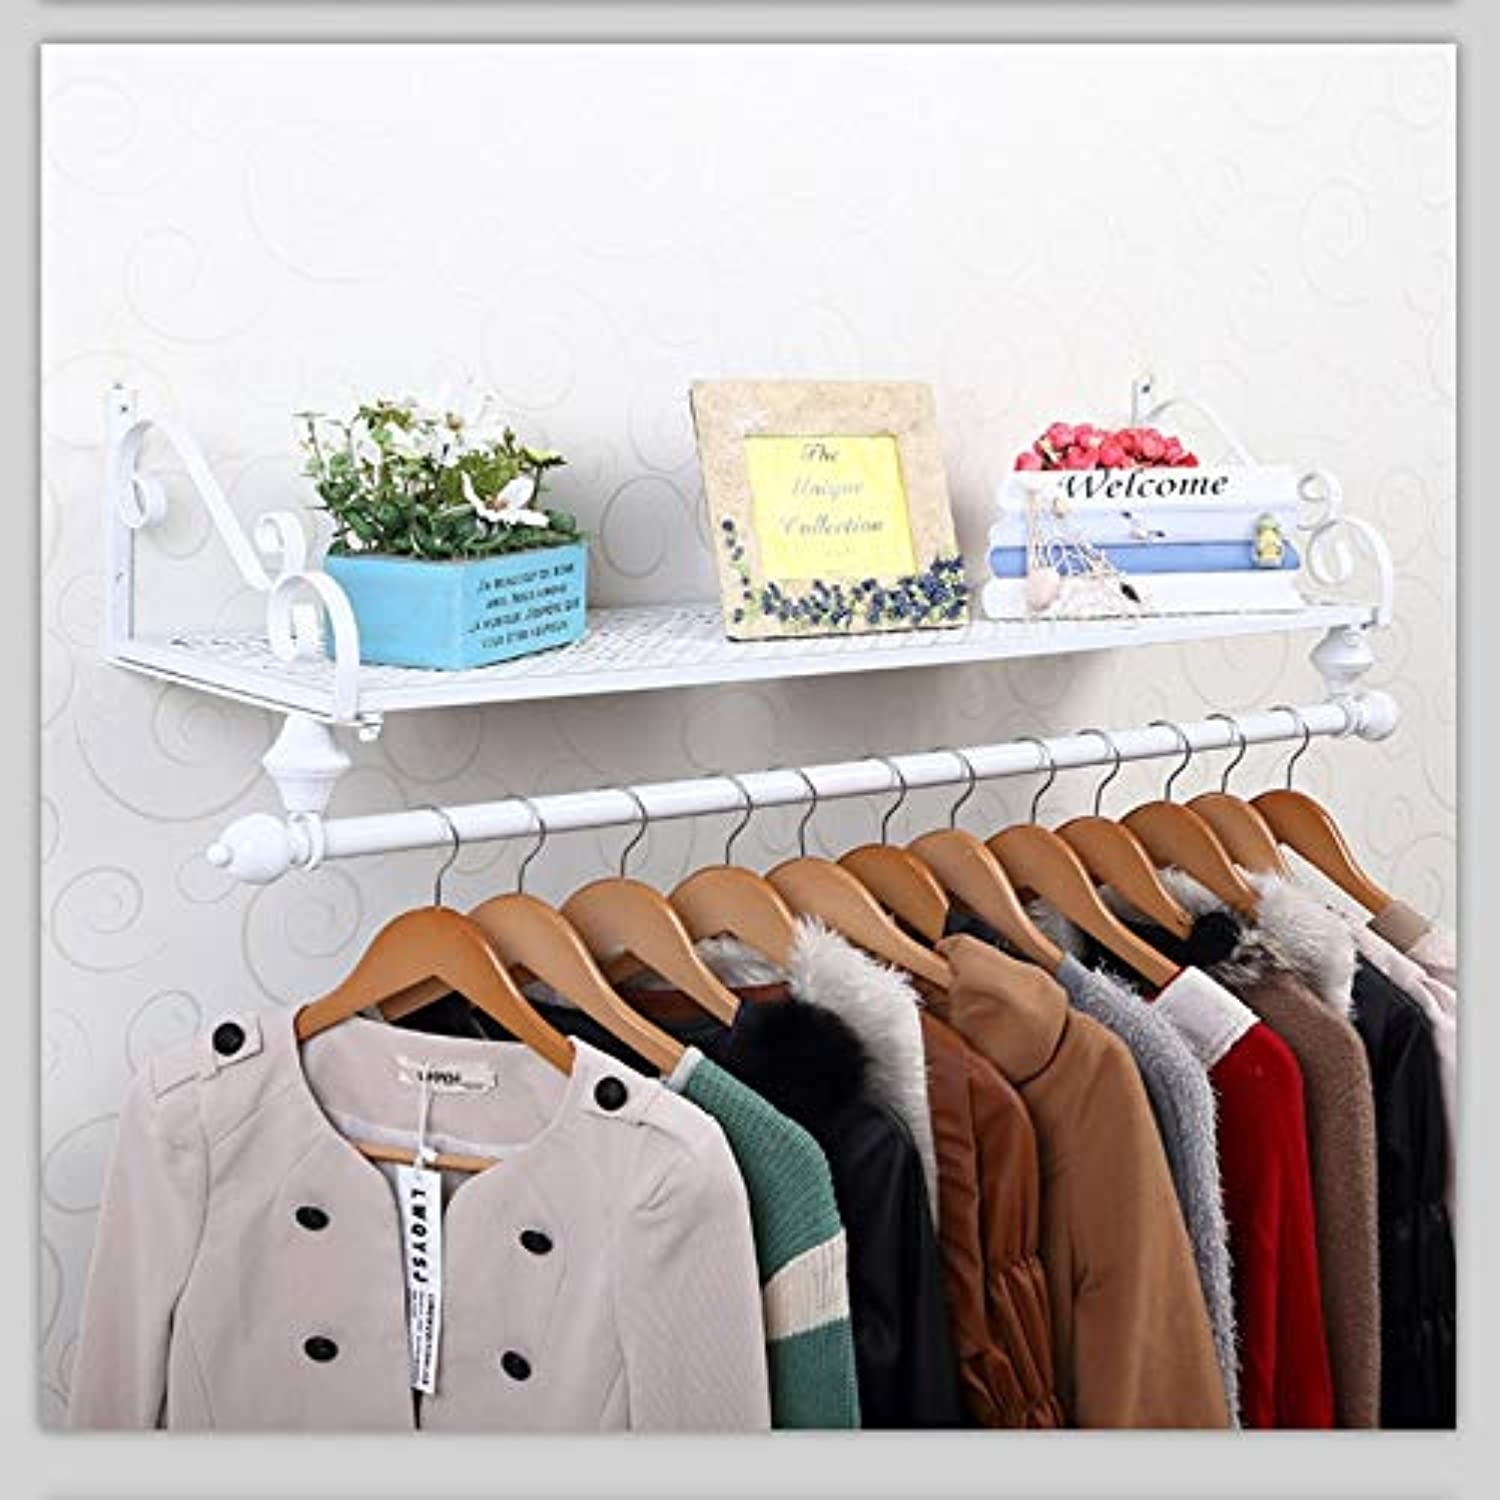 WFFXLL Iron Coat Rack Garment Hanger Wall Mounted, Single Rail Clothes Holder and Storage Floating Shelf for Entryway Hallway Bedroom Bathroom Coat Rack (color   White, Size   60x28cm)